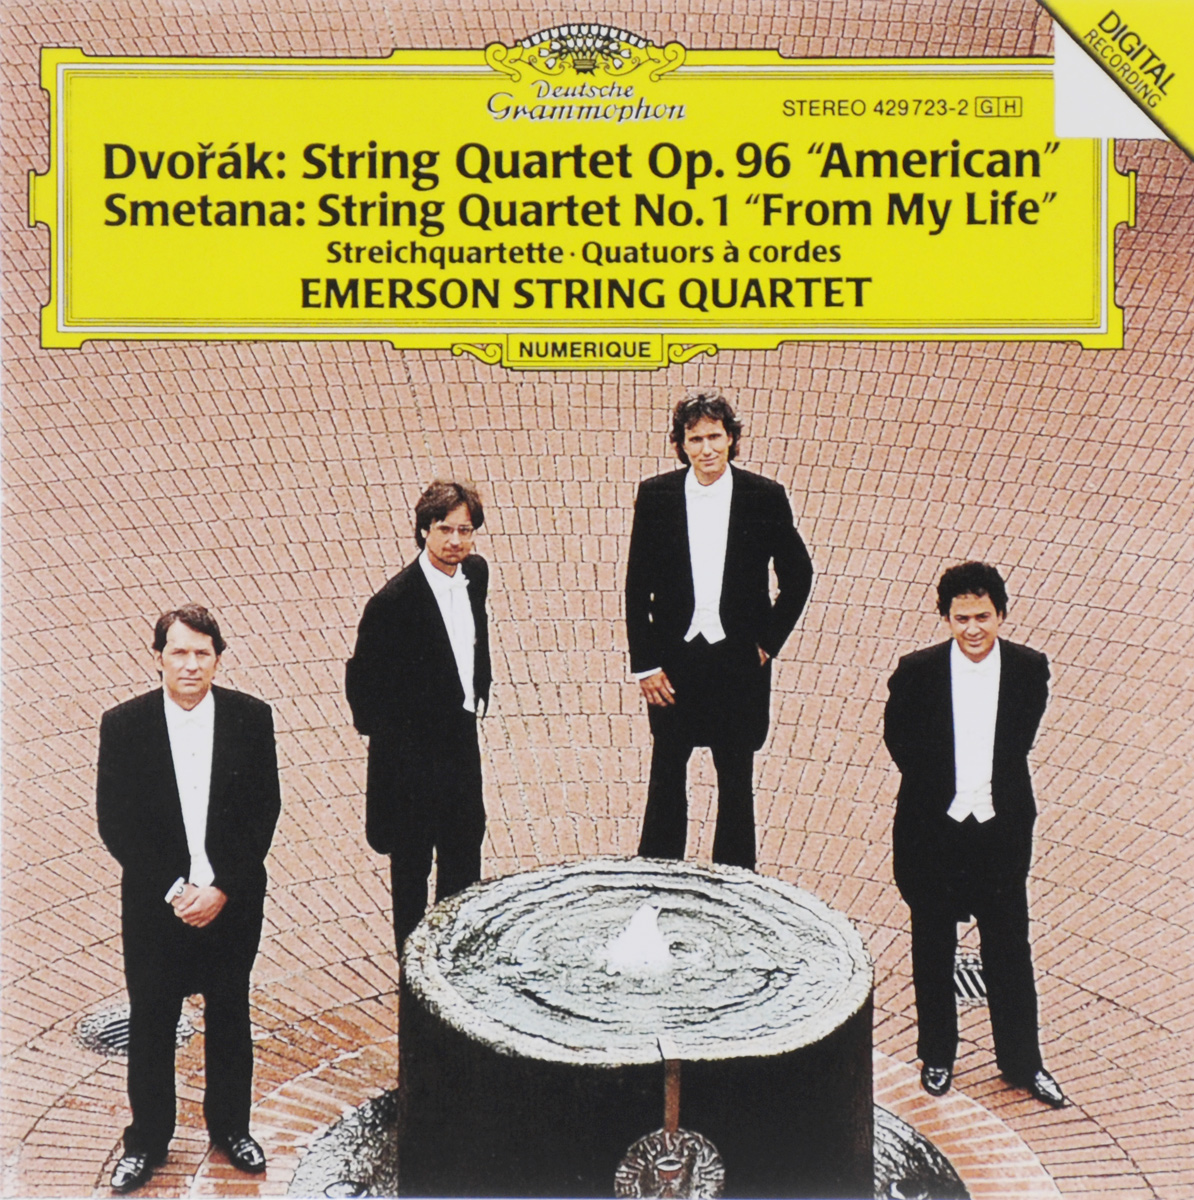 Emerson String Quartet Emerson String Quartet. String Quartet Op. 96 American / String Quartet No. 1 From My Life vin bouquet фляжка 236 мл в античной медной отделке fiv 107 vin bouquet